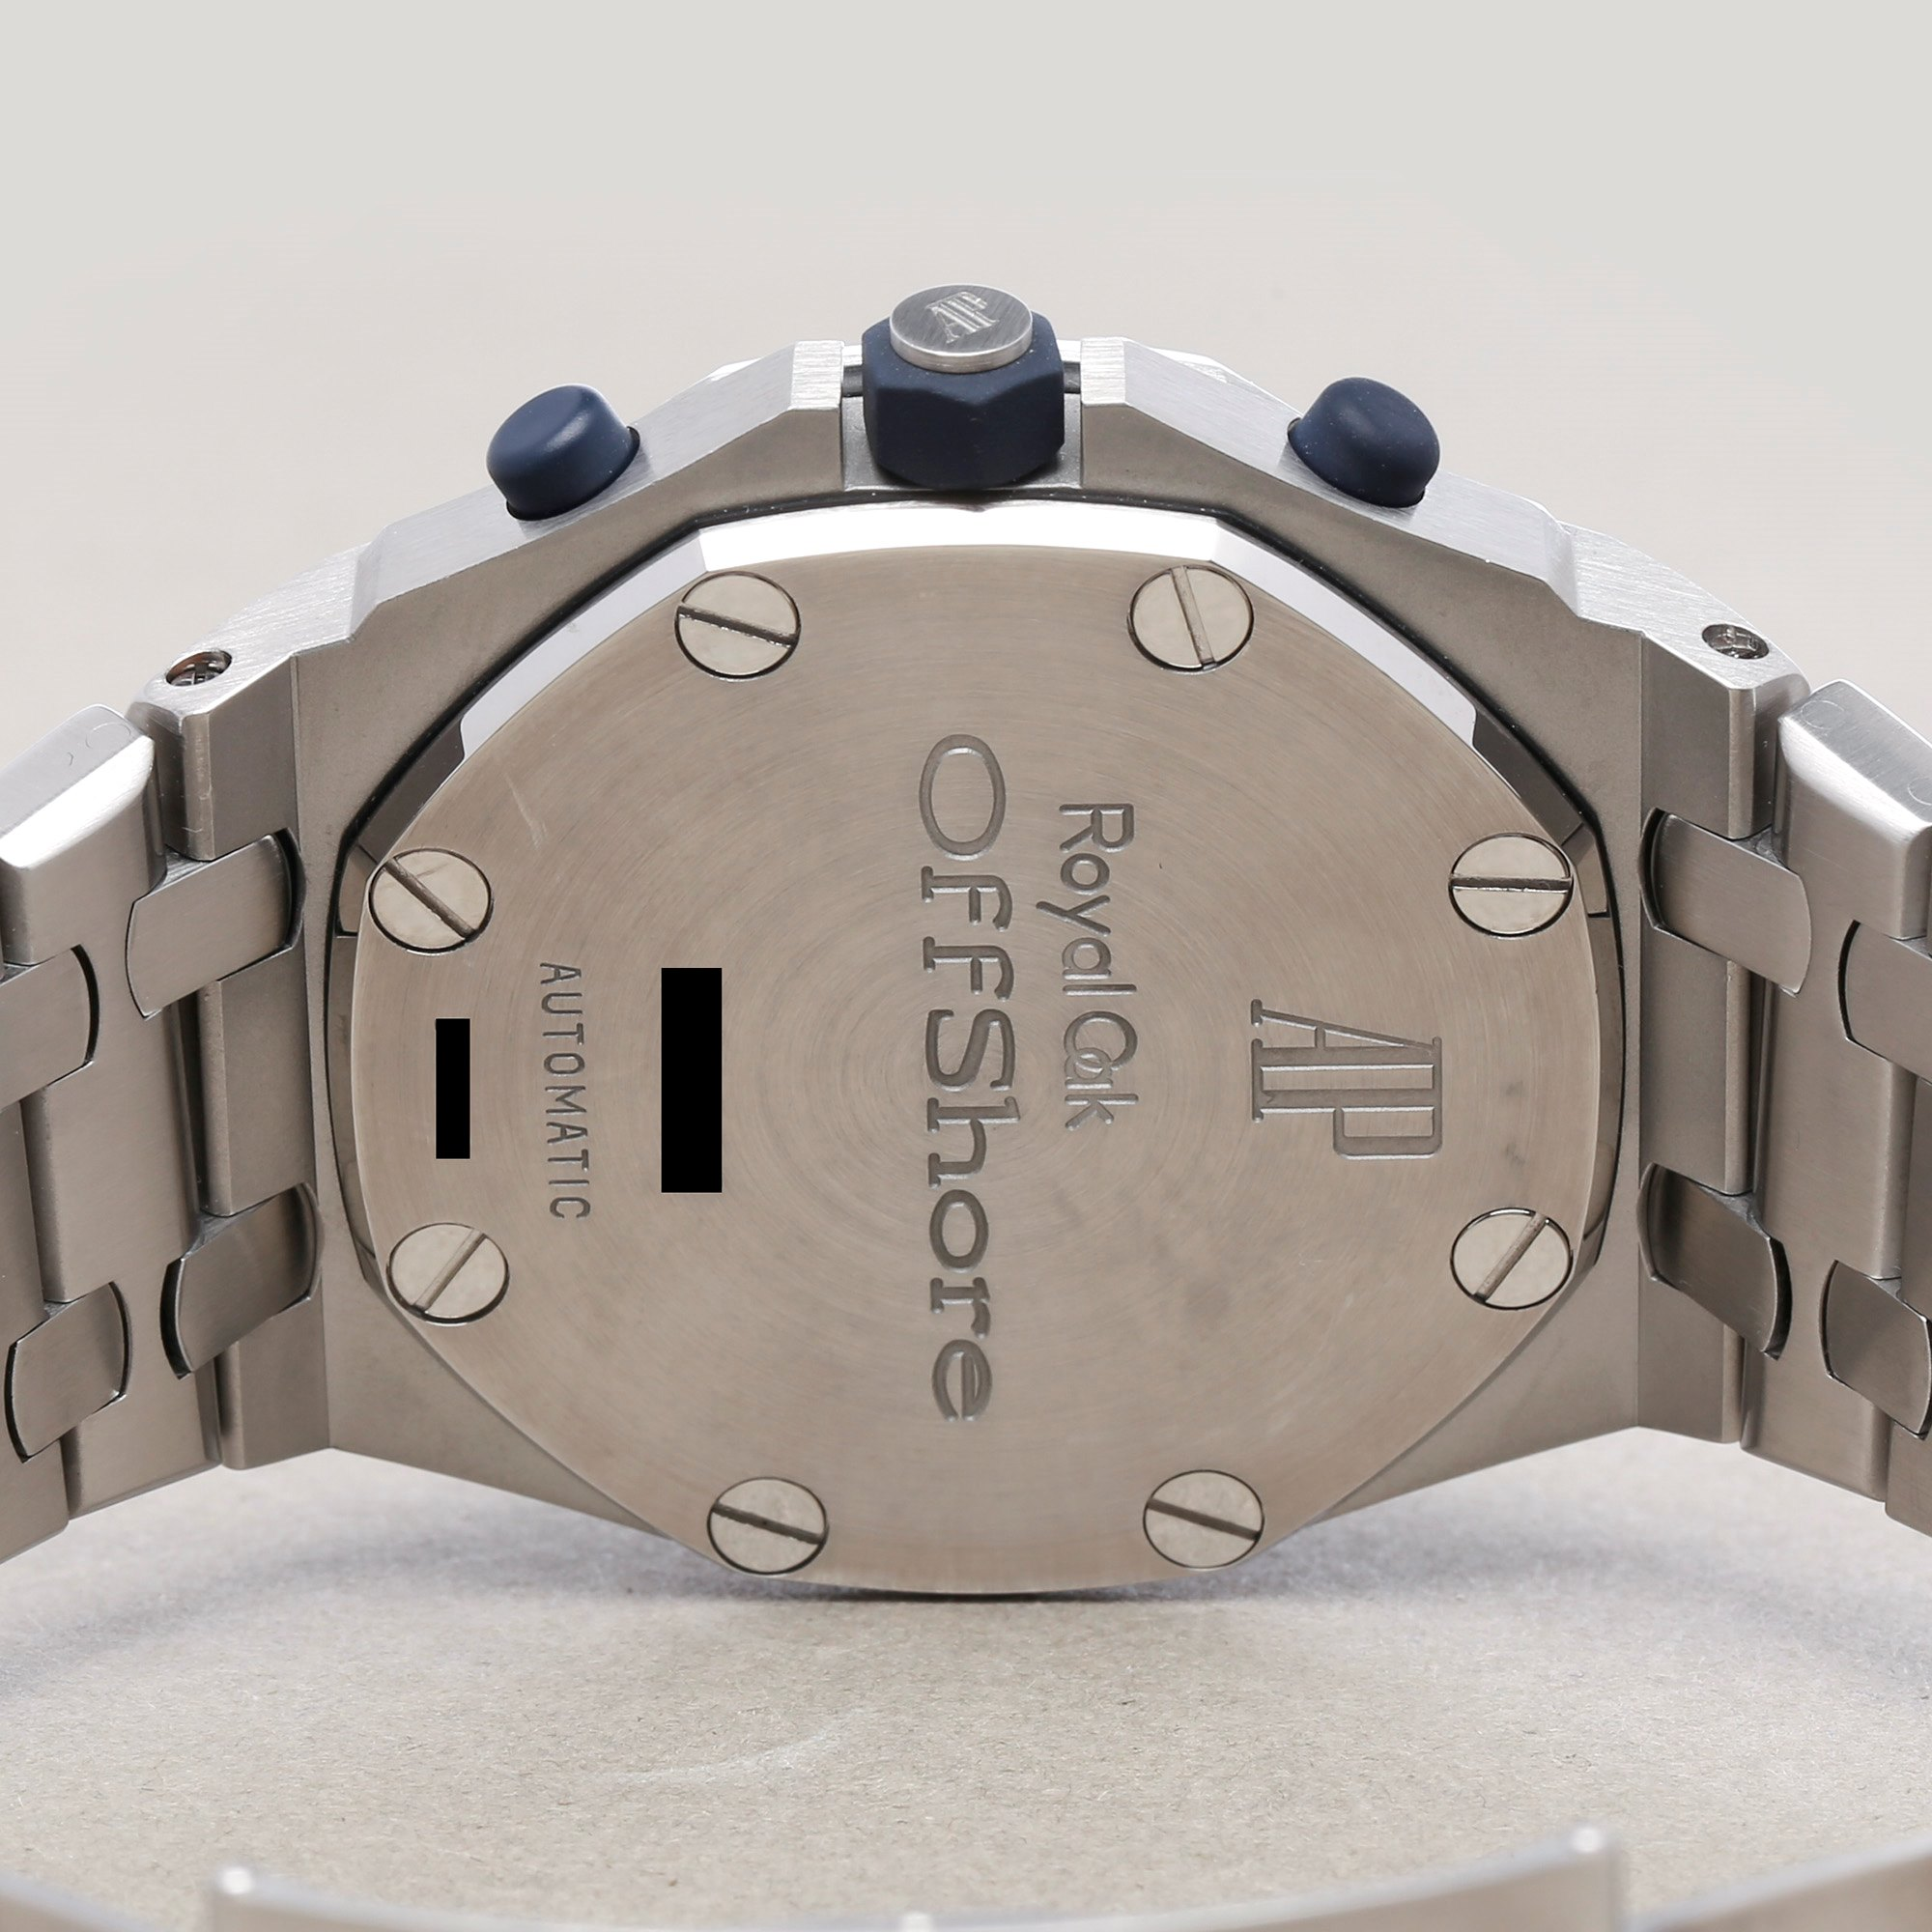 Audemars Piguet Royal Oak Offshore 'The Beast' Tropical Tachymeter Scale Stainless Steel - 25721ST.O.1000ST.01 Stainless Steel 25721ST.O.1000ST.01